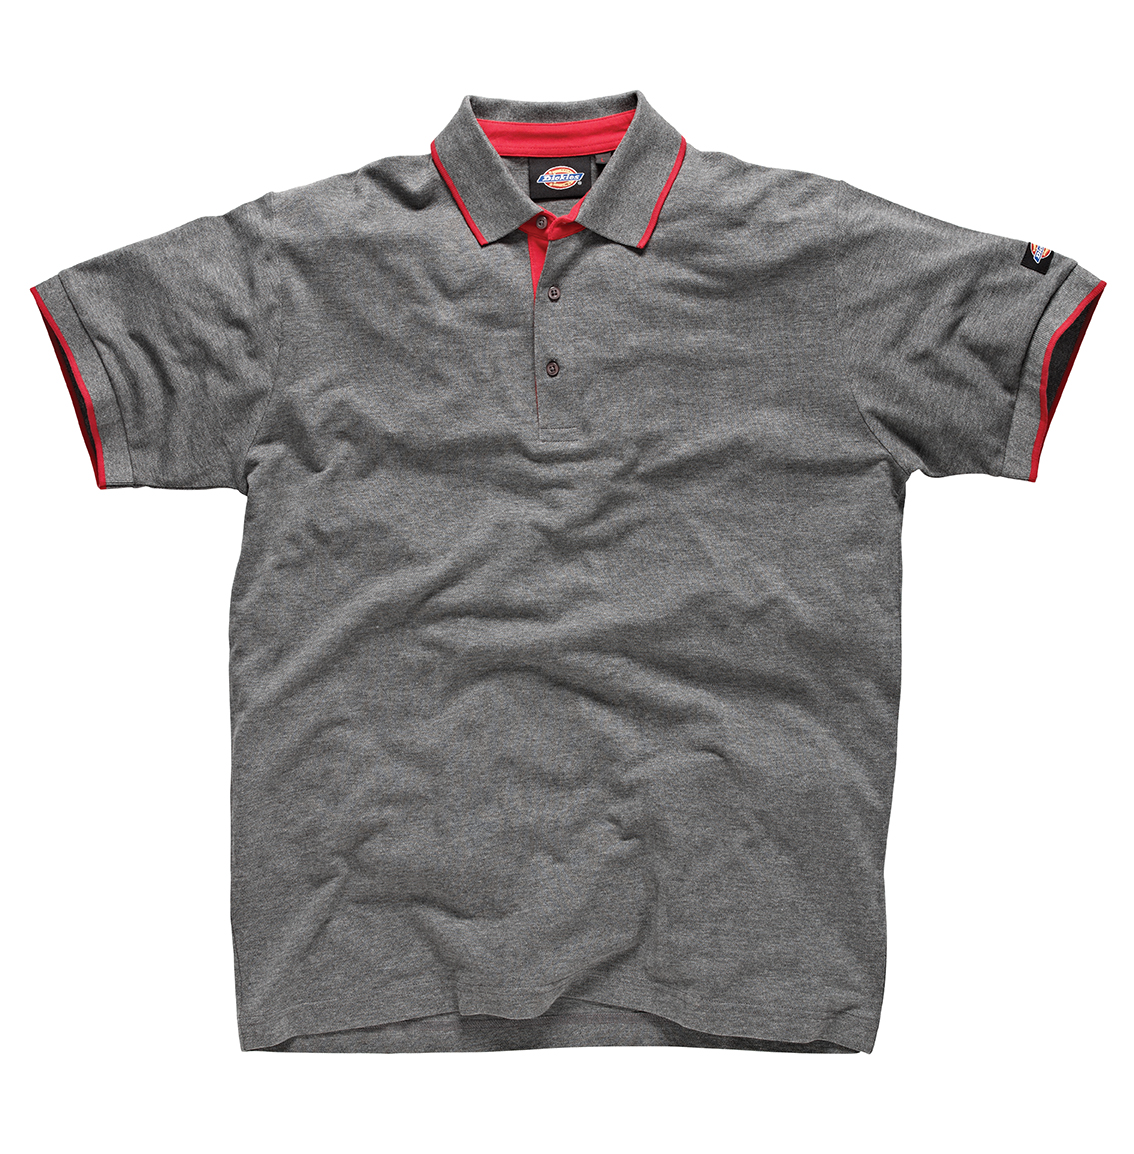 dickies 22 anvil polo shirts small xxxl black grey or blue ebay. Black Bedroom Furniture Sets. Home Design Ideas